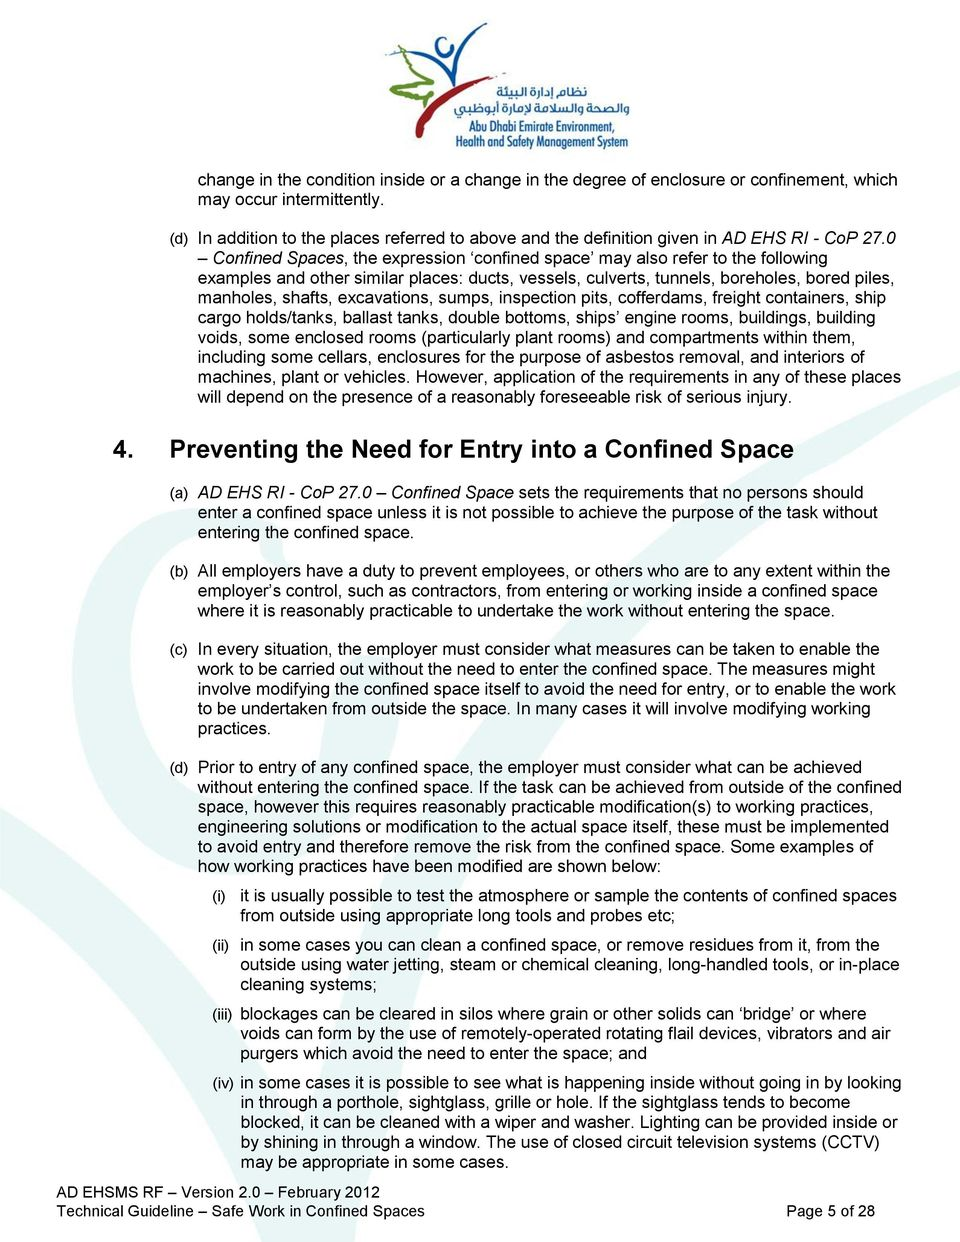 0 Confined Spaces, the expression confined space may also refer to the following examples and other similar places: ducts, vessels, culverts, tunnels, boreholes, bored piles, manholes, shafts,